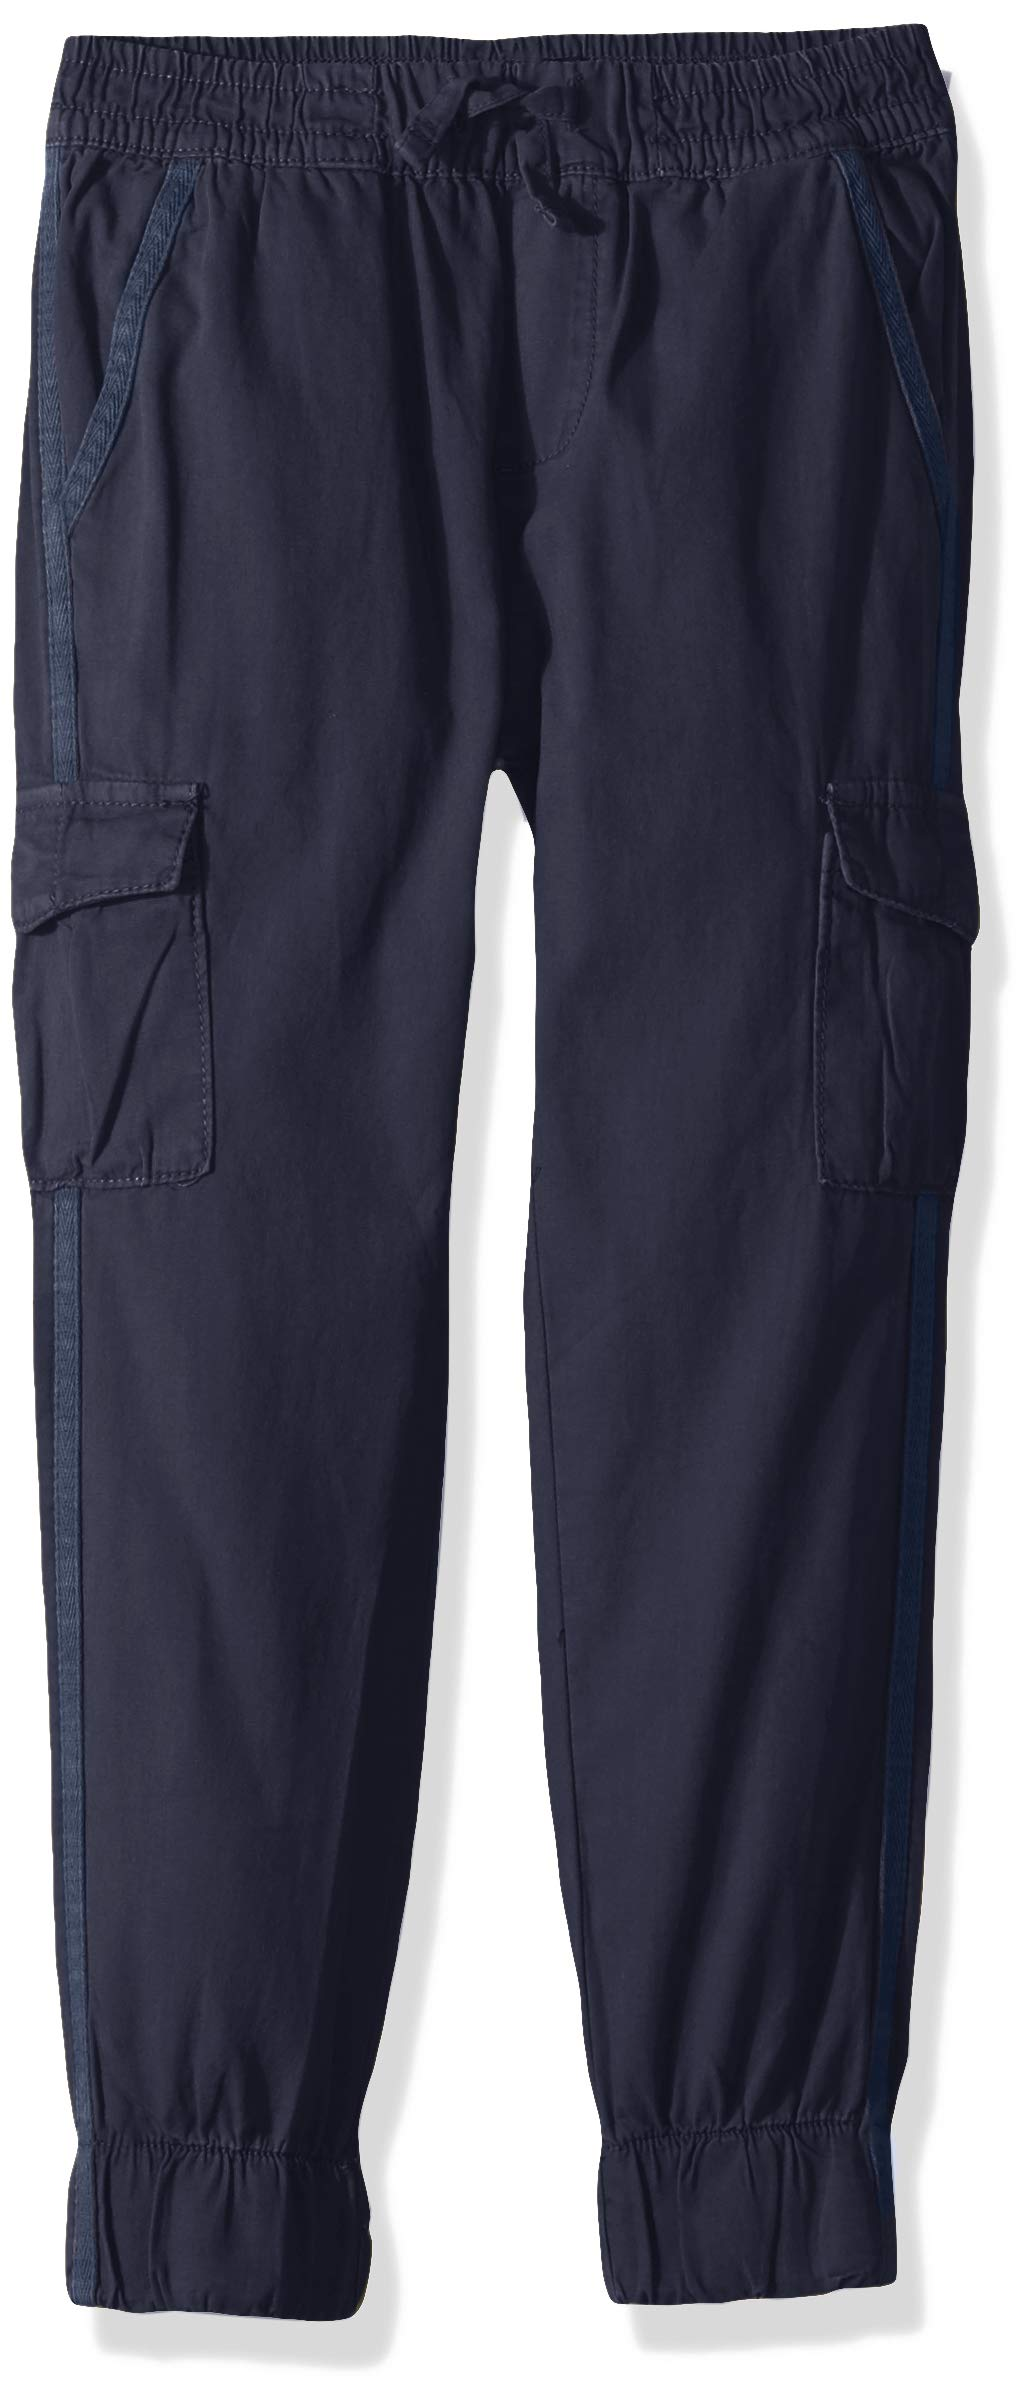 7 For All Mankind Kids Boys' Little Jogger Pant, Canvas Navy, 6